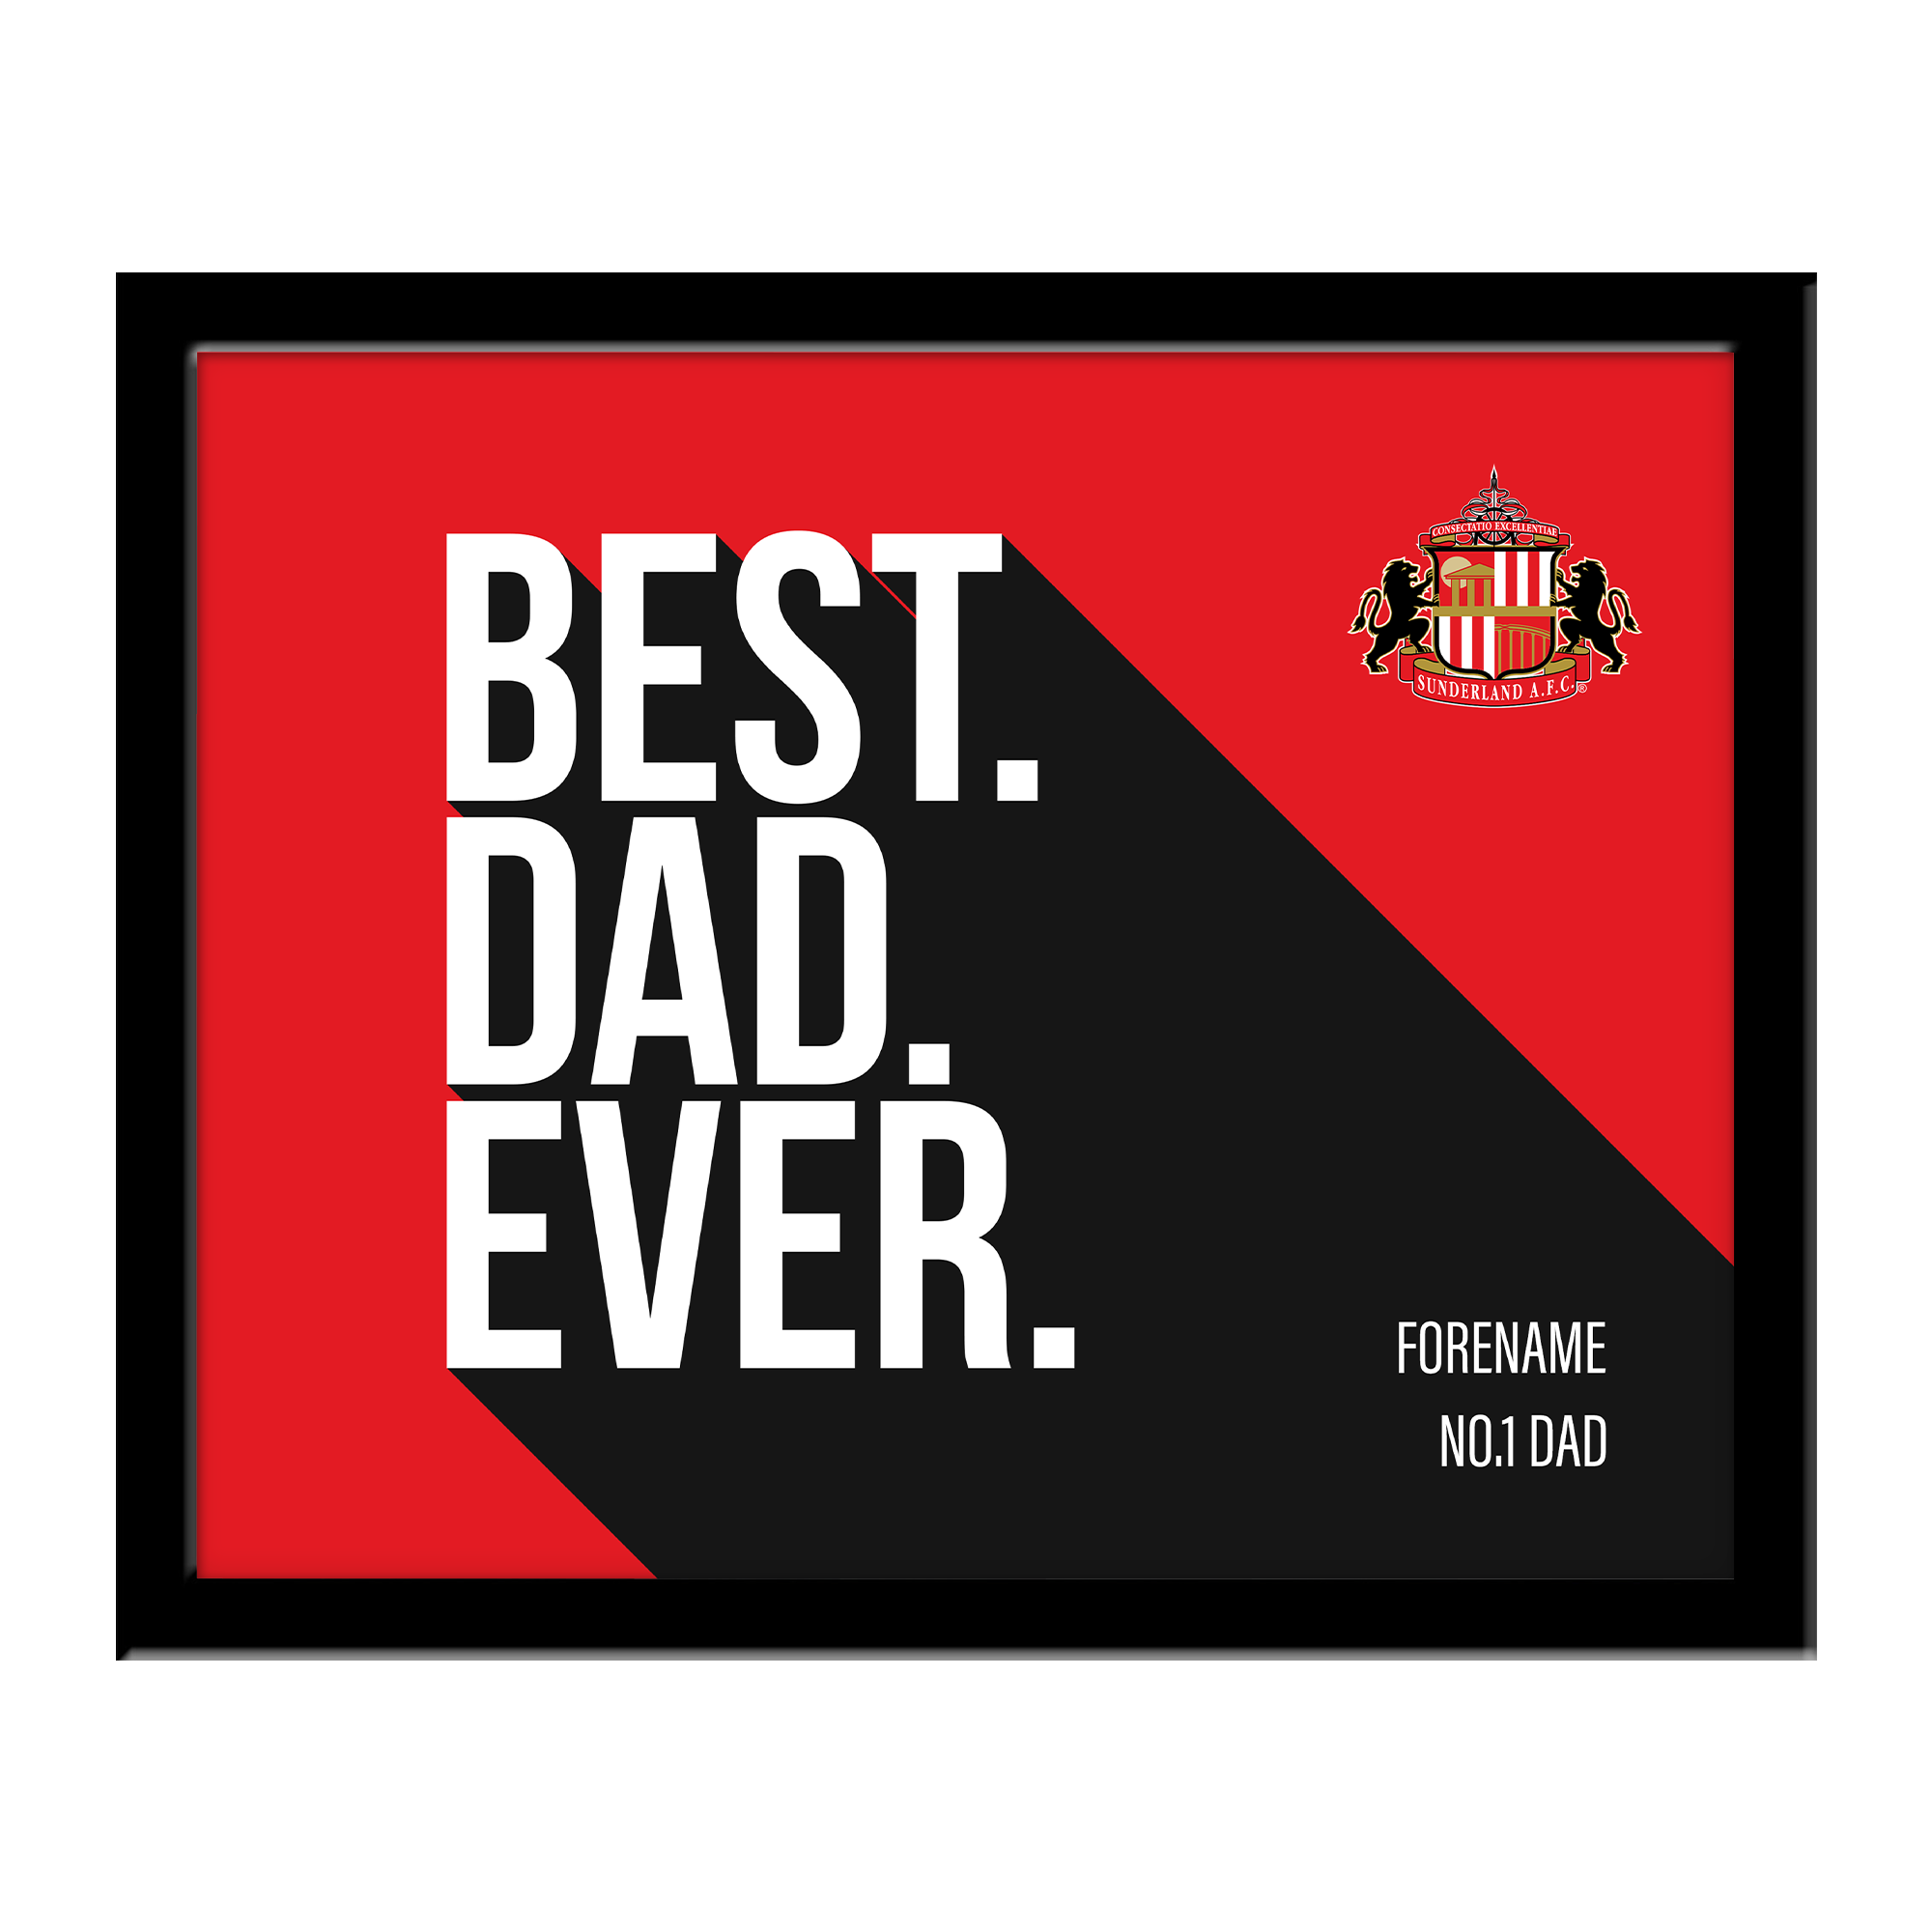 Sunderland Best Dad Ever 10 x 8 Photo Framed